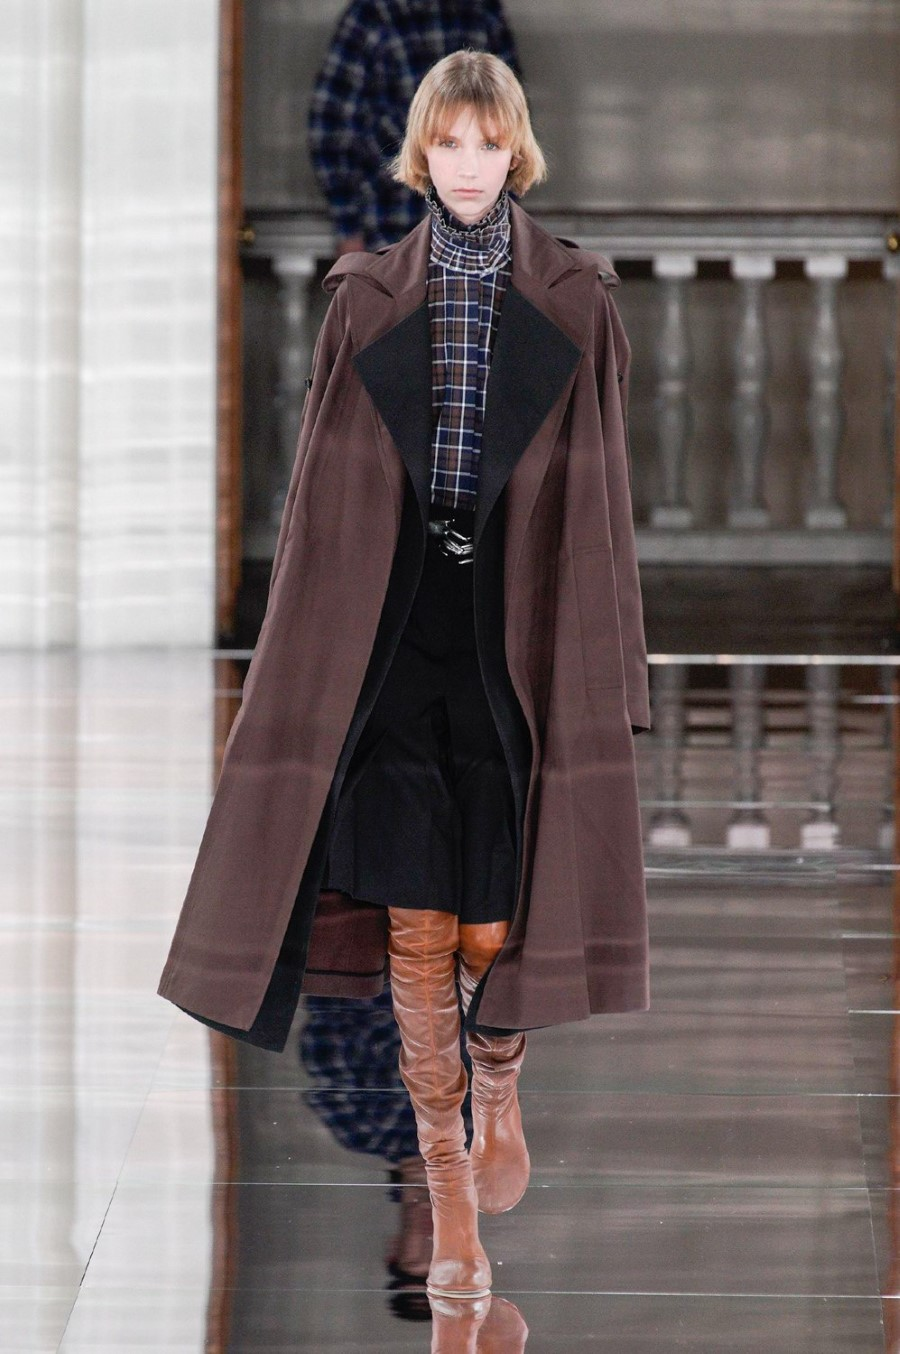 Victoria Beckham - Fall Winter 2020 - London Fashion Week